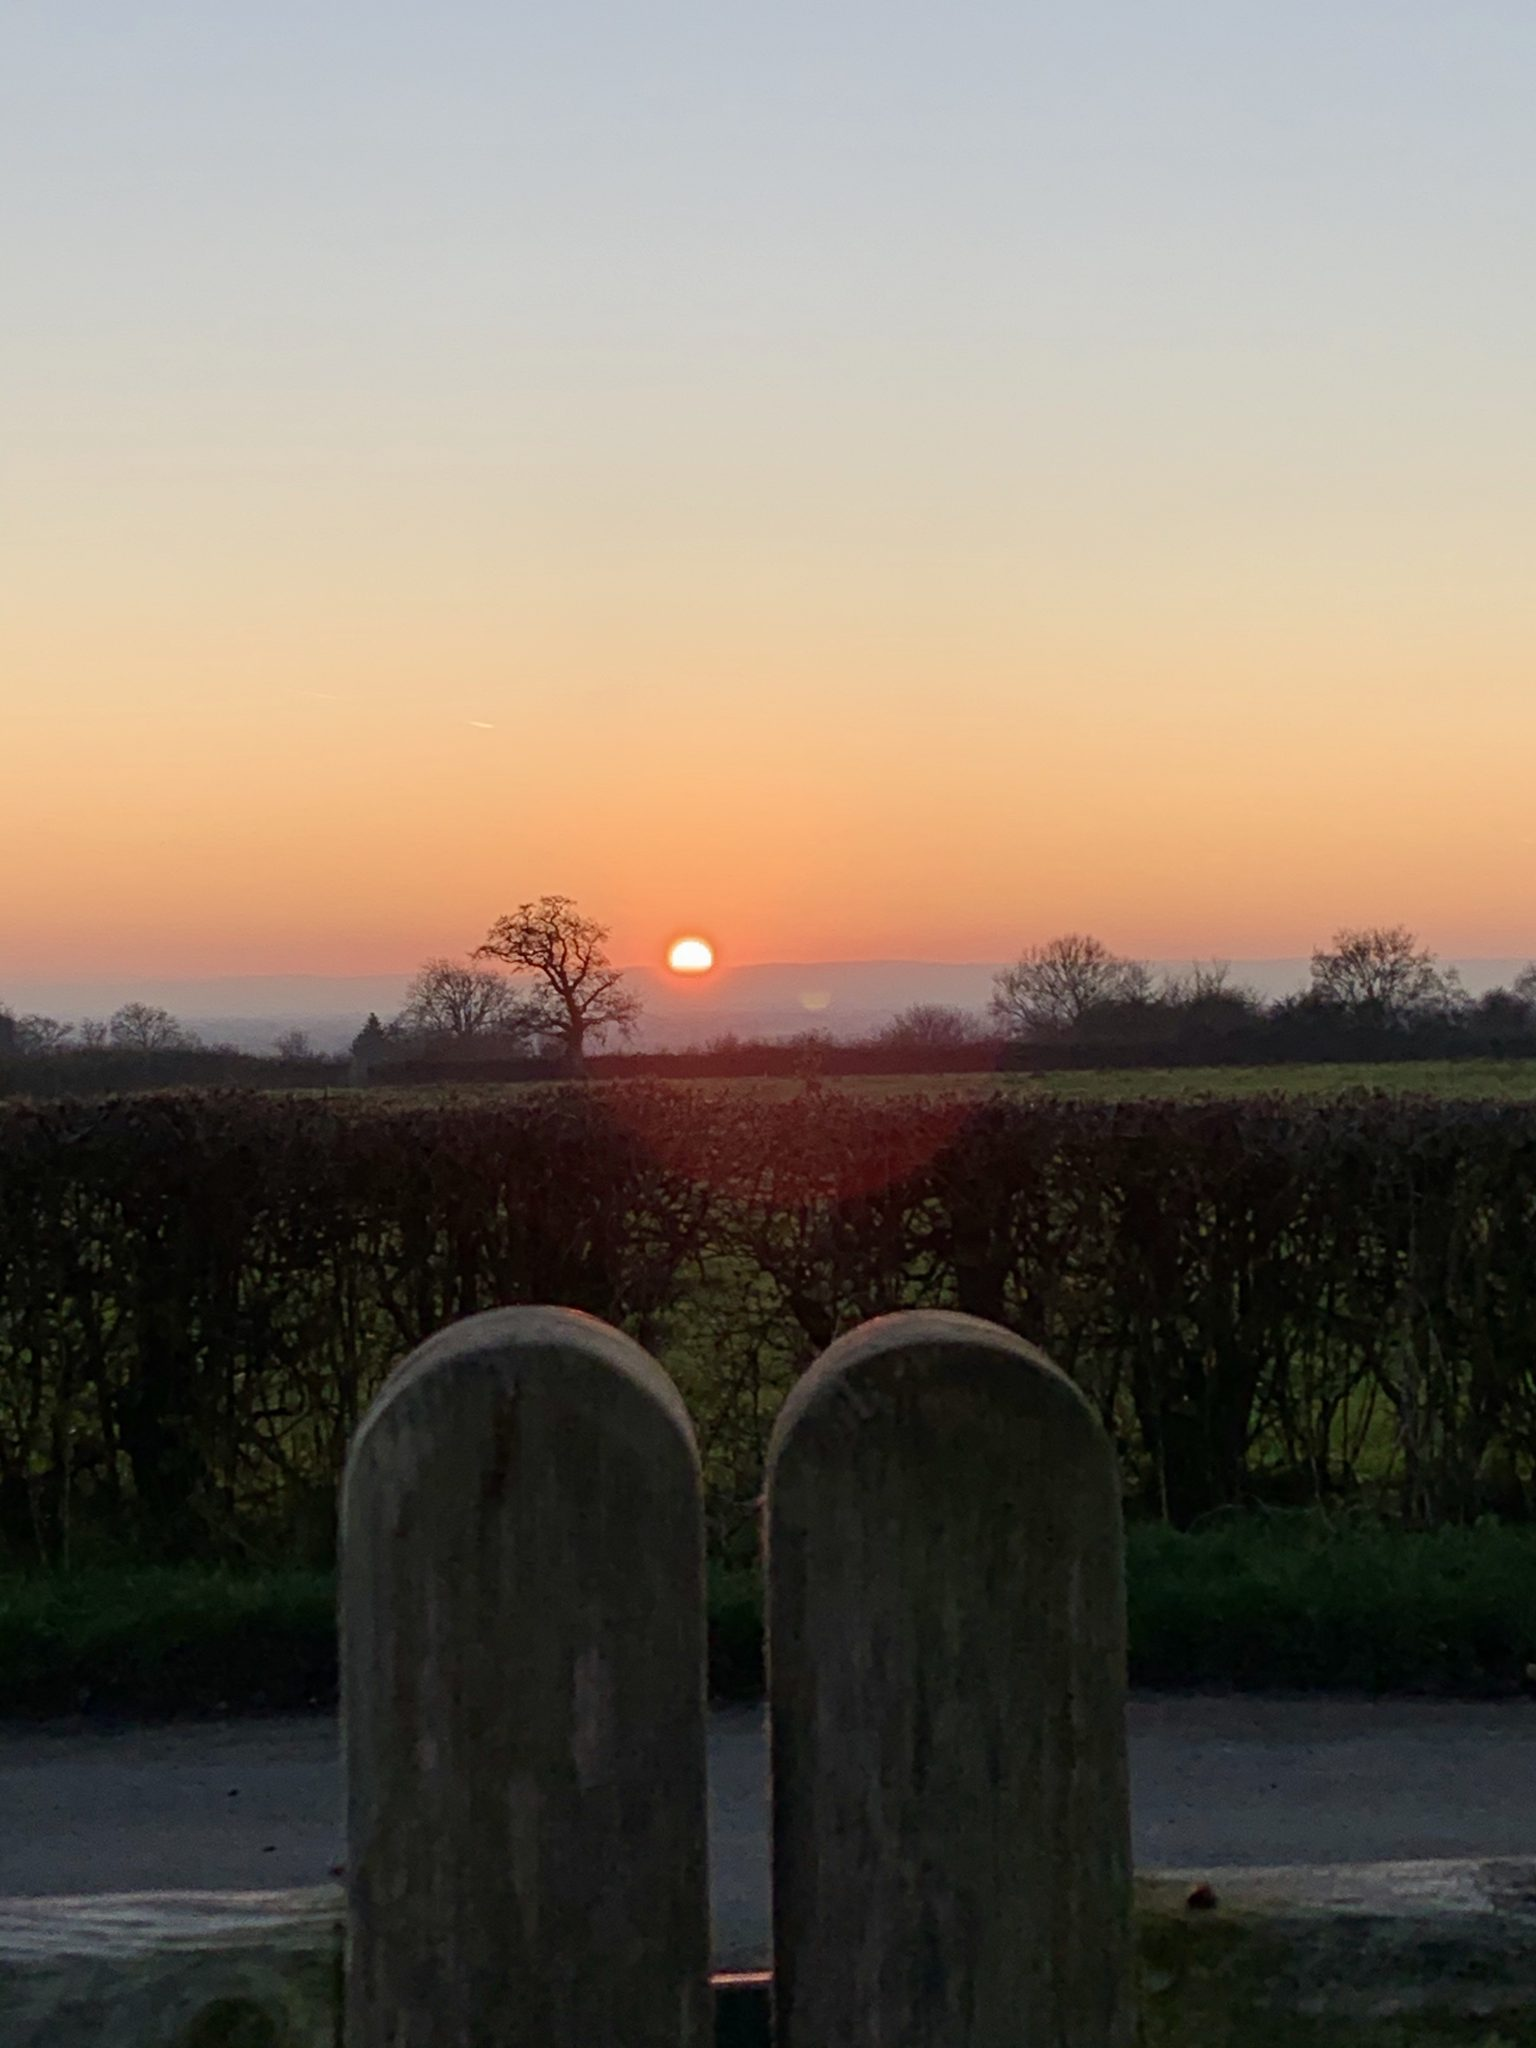 Sunset over the gate